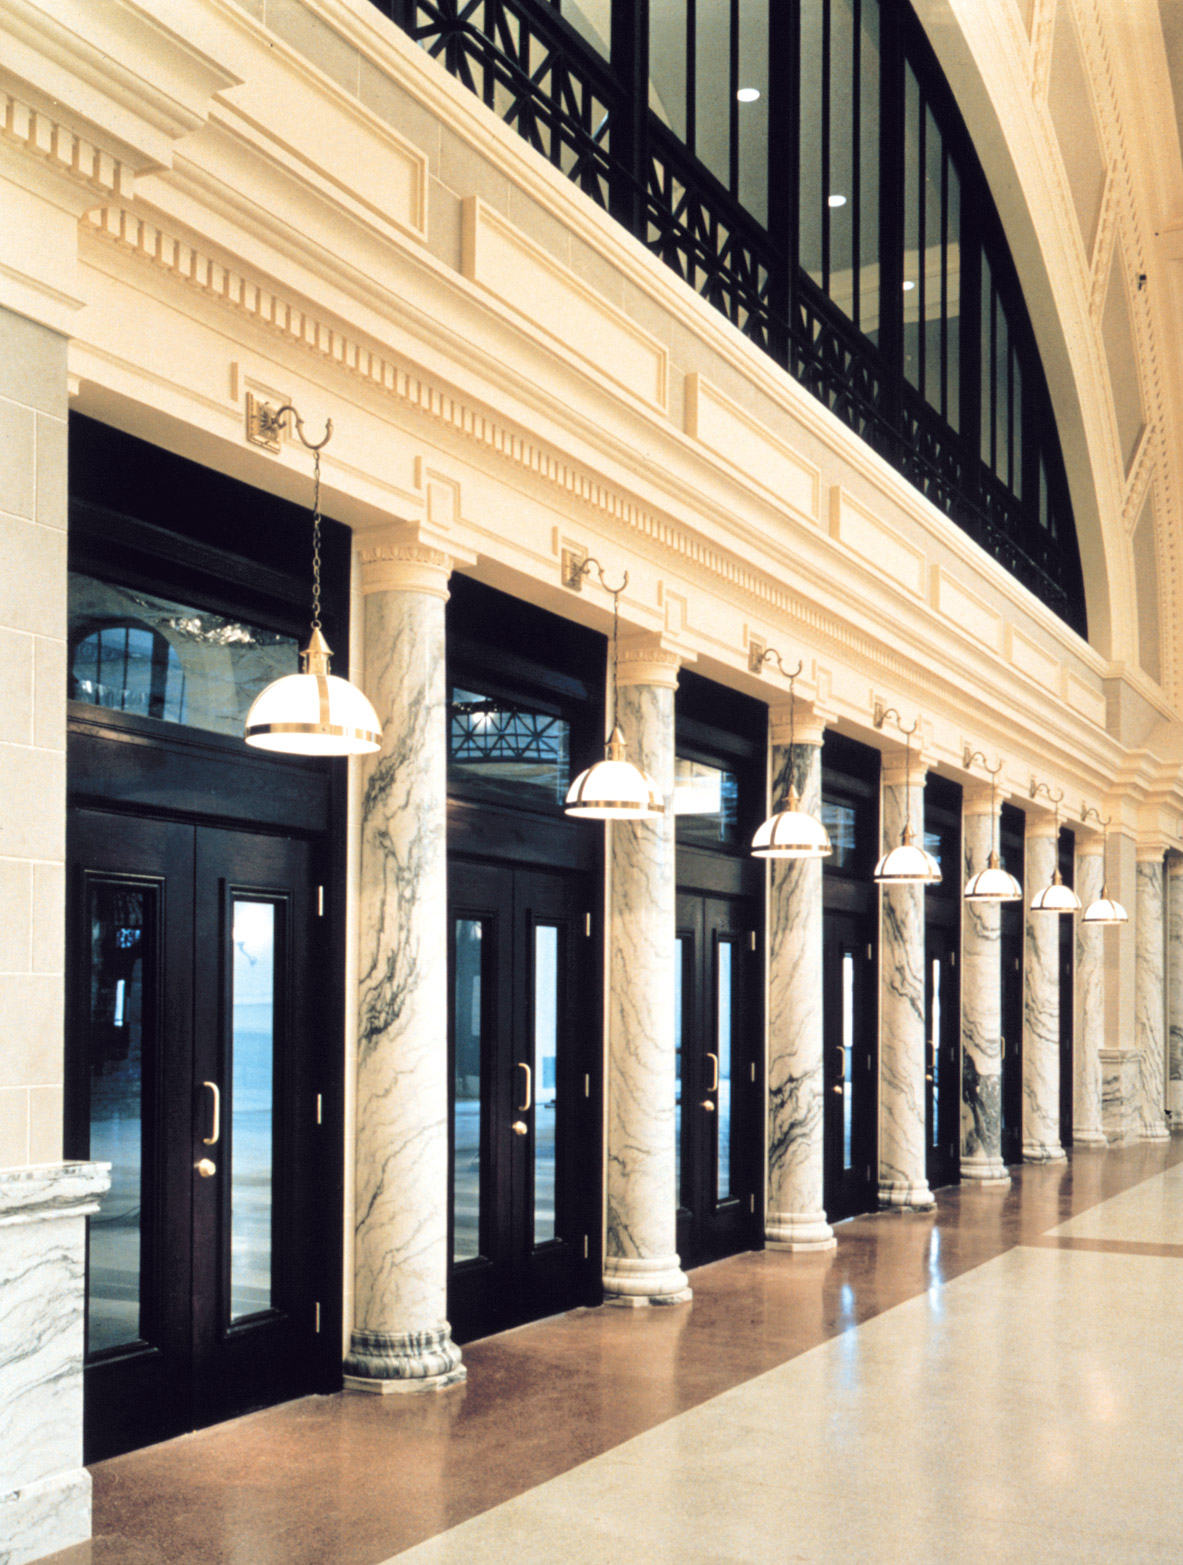 Entrance to the Union Station Intermodal Transportation Center from the inside, with black doors and ironwork, regularly interspersed with marbled columns.